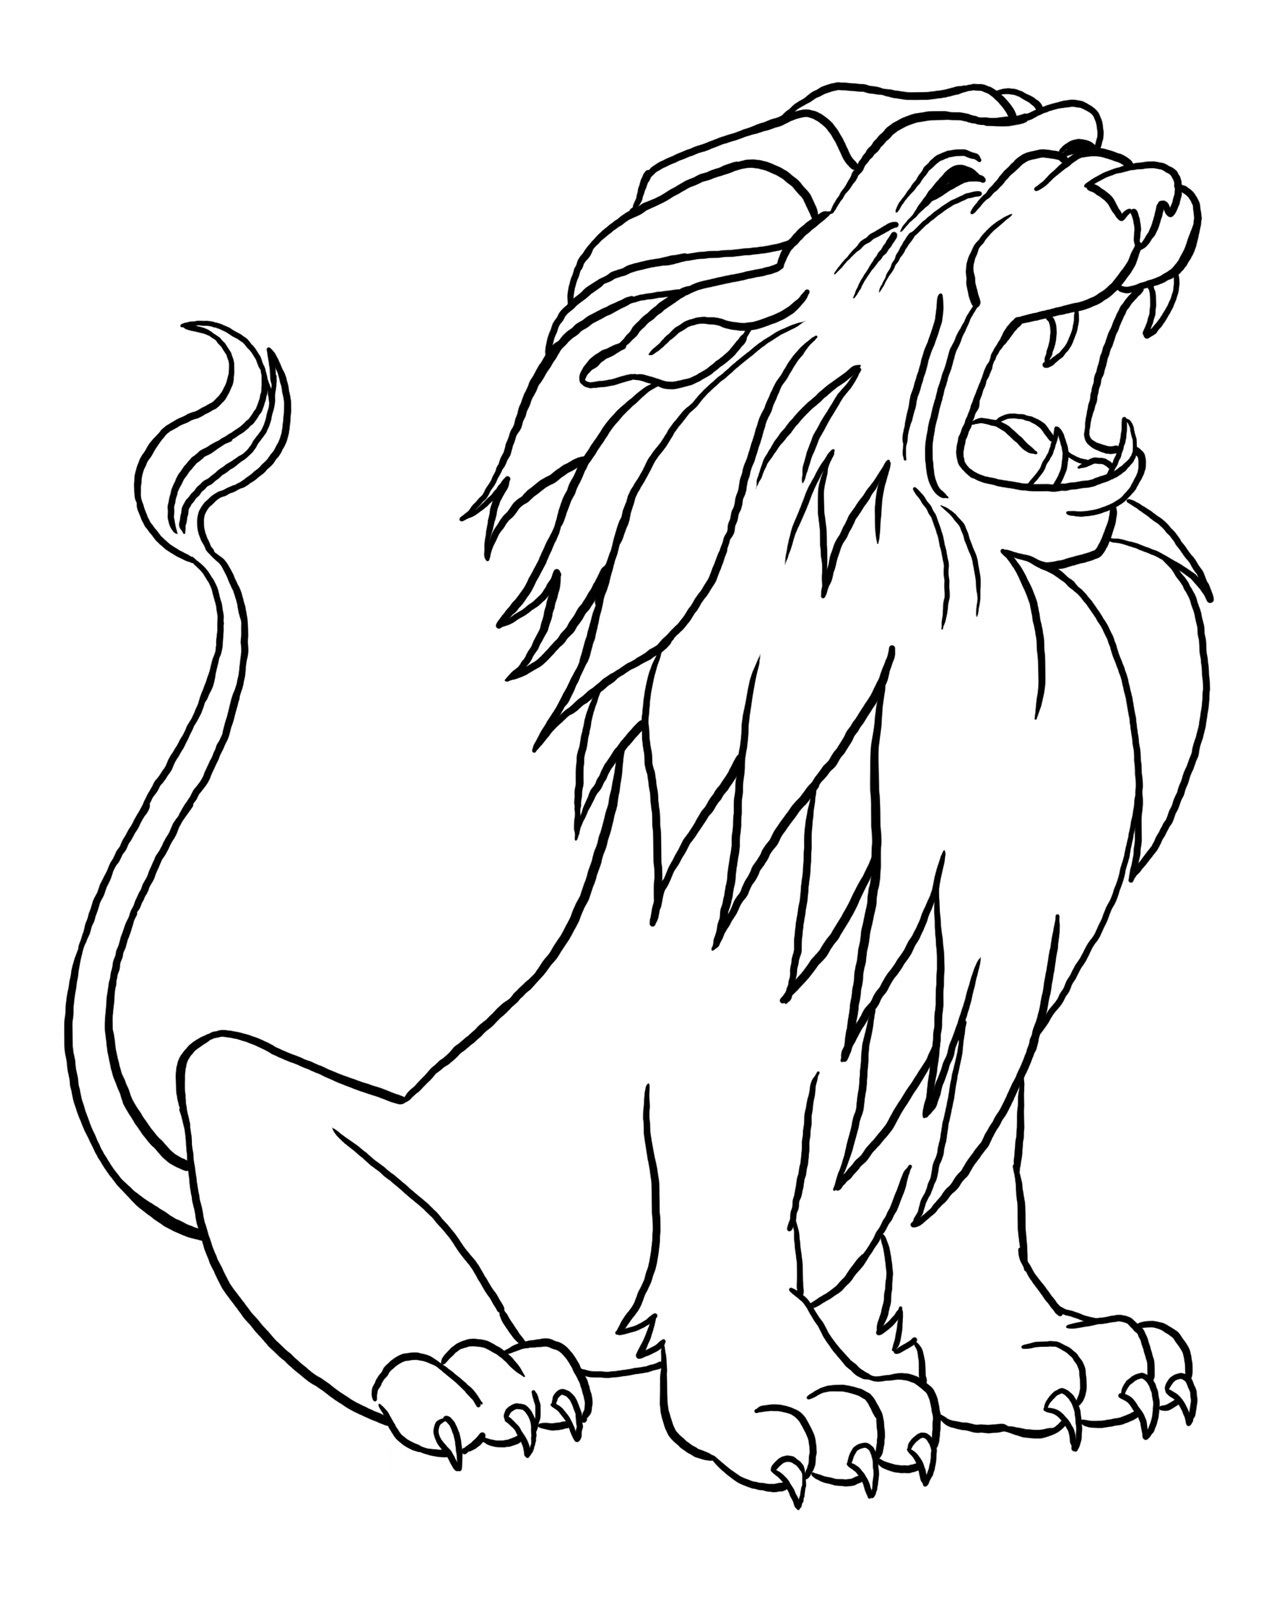 Lion-Coloring-Pages-Kids.jpg 1,278×1,600 pixels | Awesomeness ...